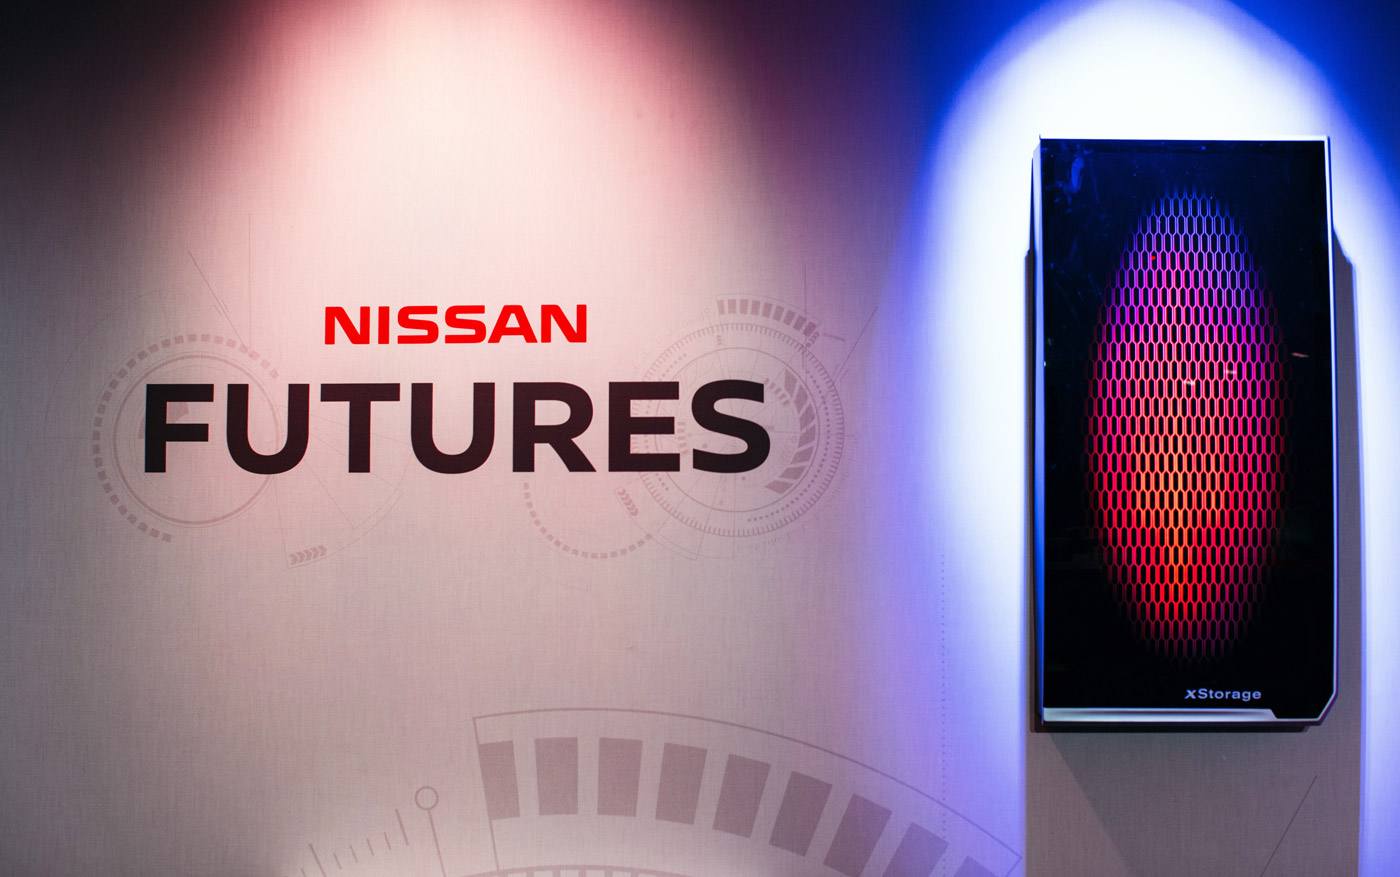 Nissan's xStorage is its take on Tesla's Powerwall battery